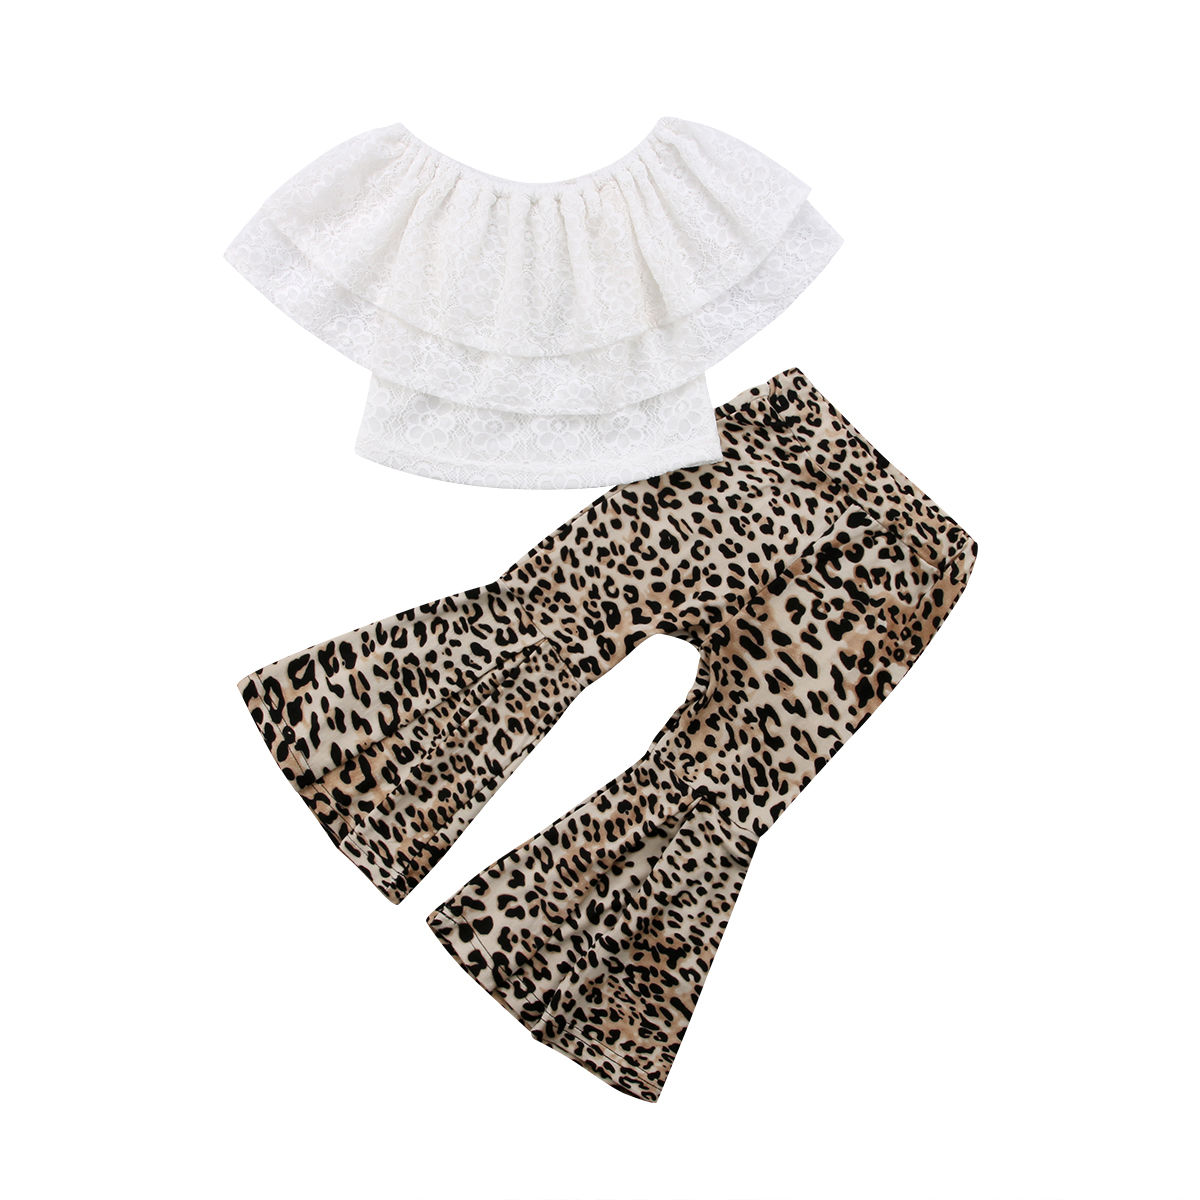 Clothing Sets Mother & Kids 2019 Girls Ruffles Long Sleeve Lace Plaid White T-shirt Tops Wide Leg Pant Trouser 2pcs Outfits Kids Clothing Set1-6t Hot